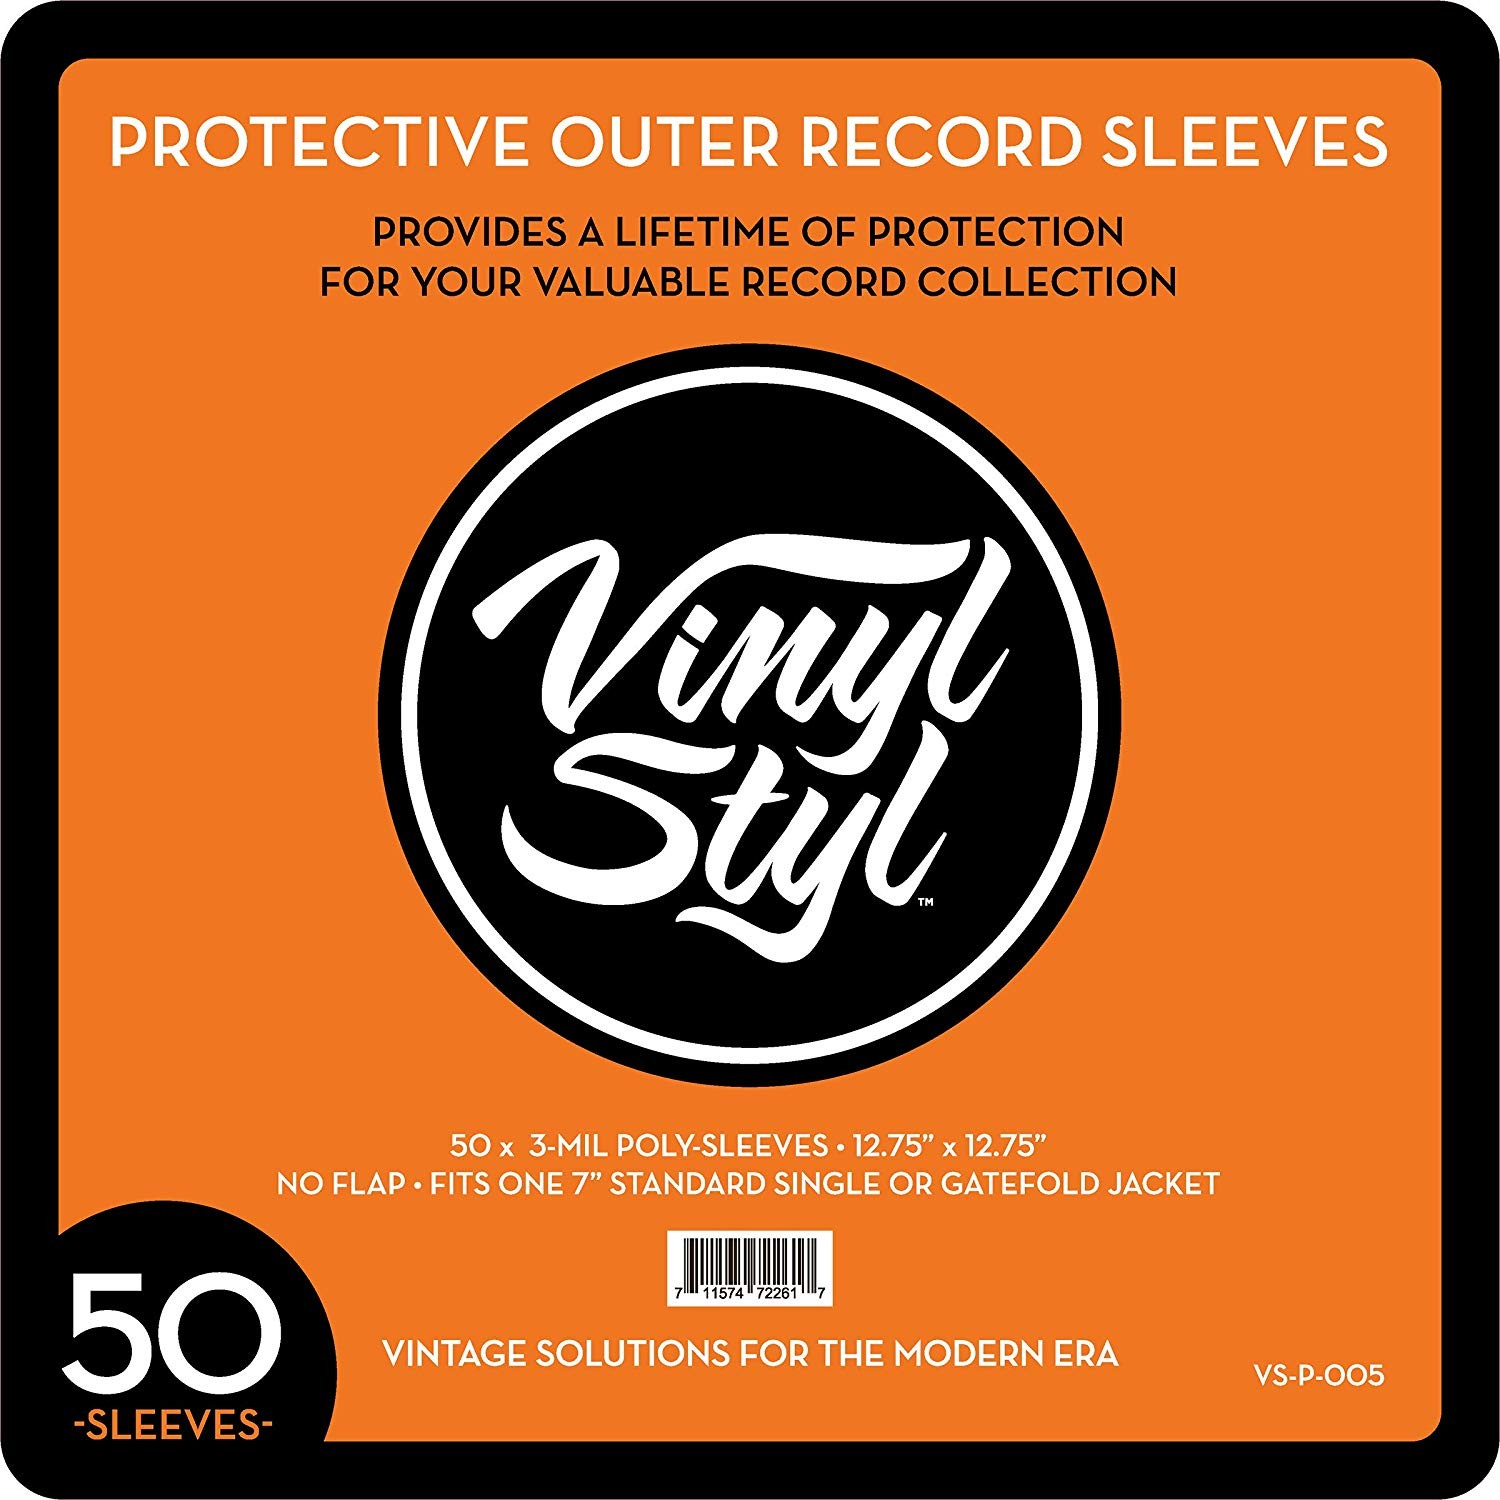 "Vinyl Styl - 12.75"" X 12.75"" 3 Mil Protective Outer Record Sleeve (QTY: 50)"